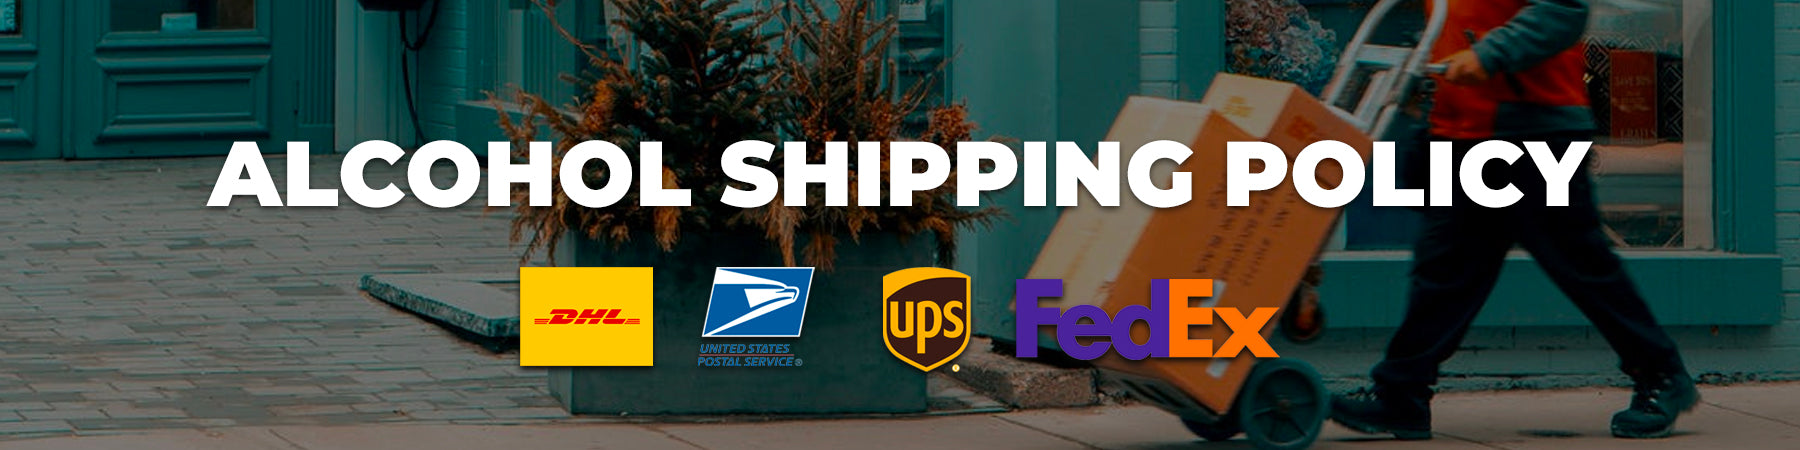 alcoholic shipping policy graphic banner